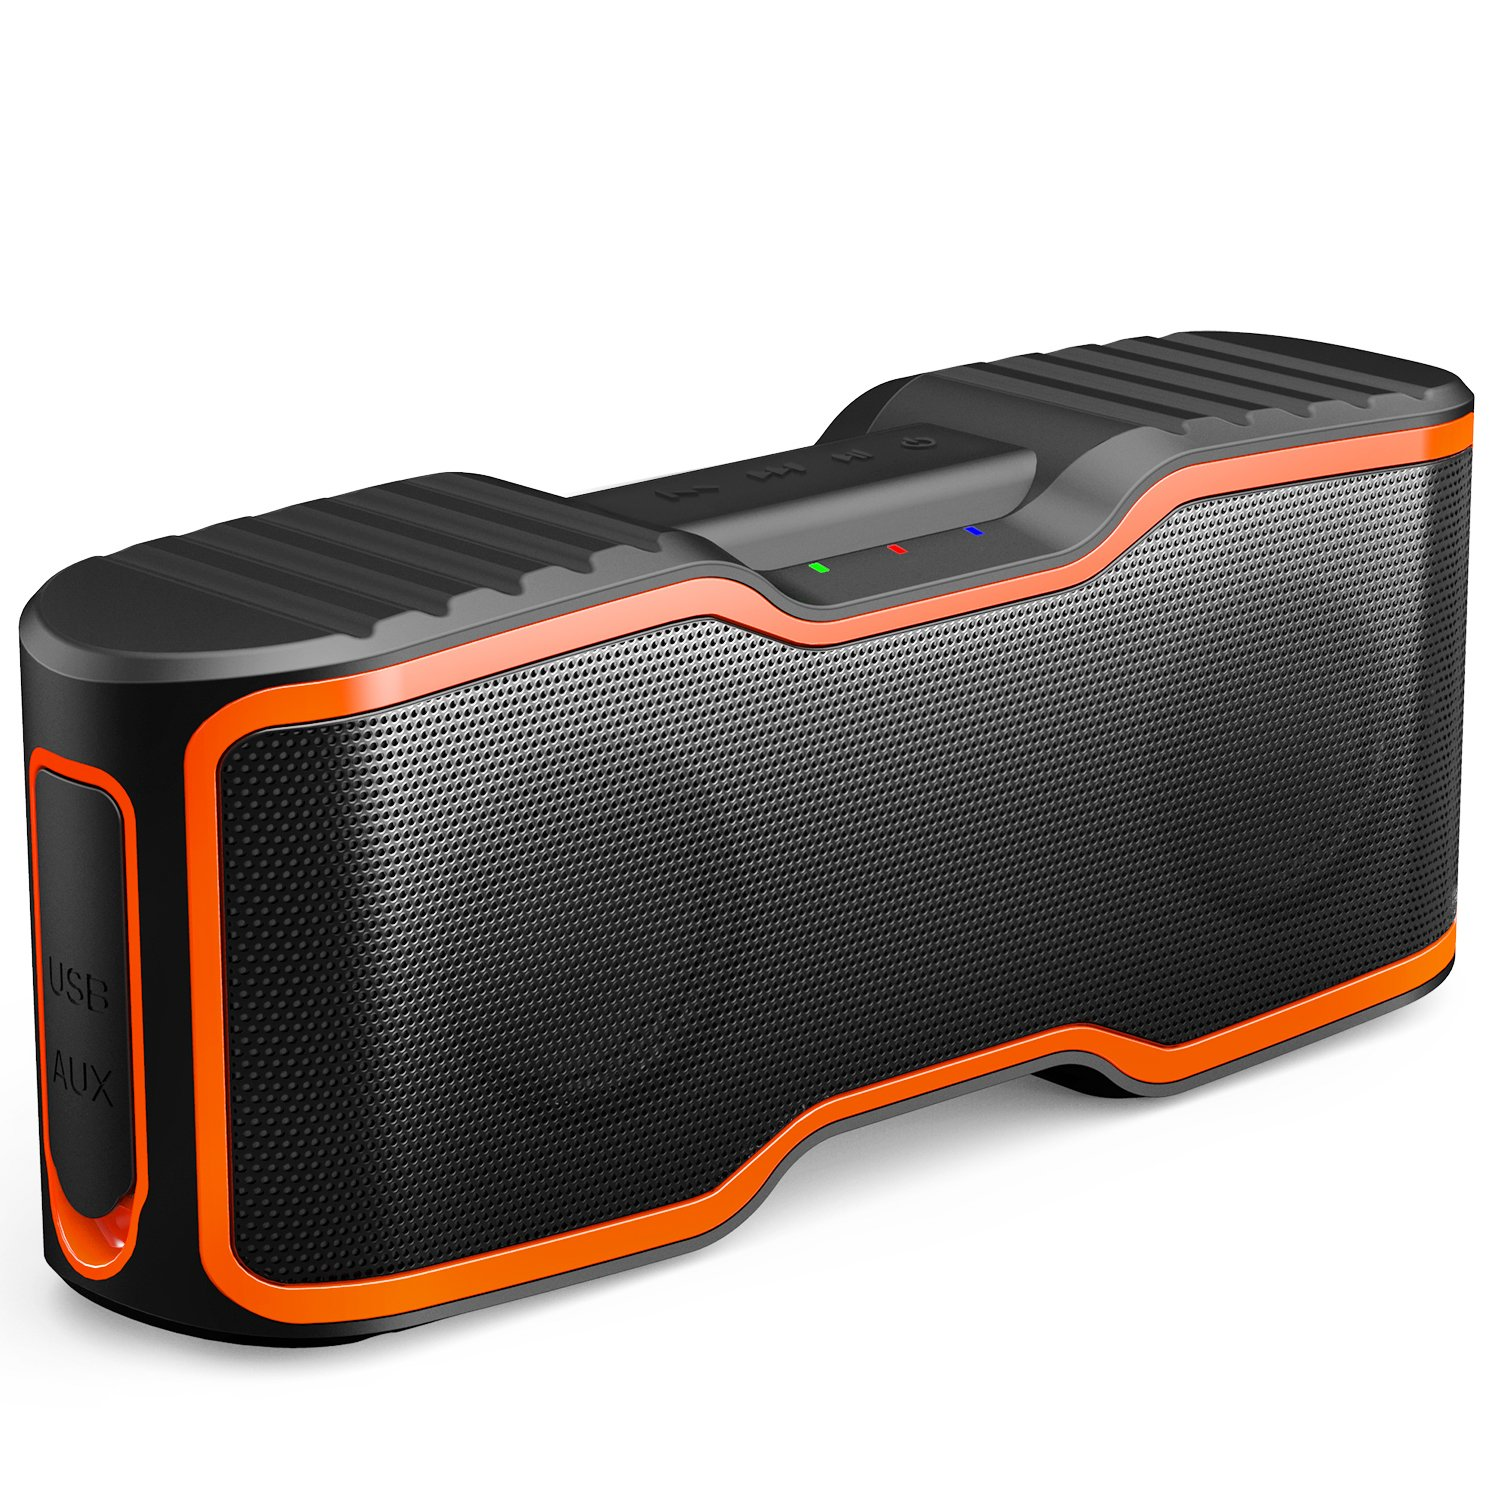 aomais-sport-ii-portable-wireless-bluetooth-speakers-waterproof-ipx7-15h-playtime-20w-bass-sound-stereo-pairing-durable-design-backyard-outdoors-travel-pool-home-party-orange